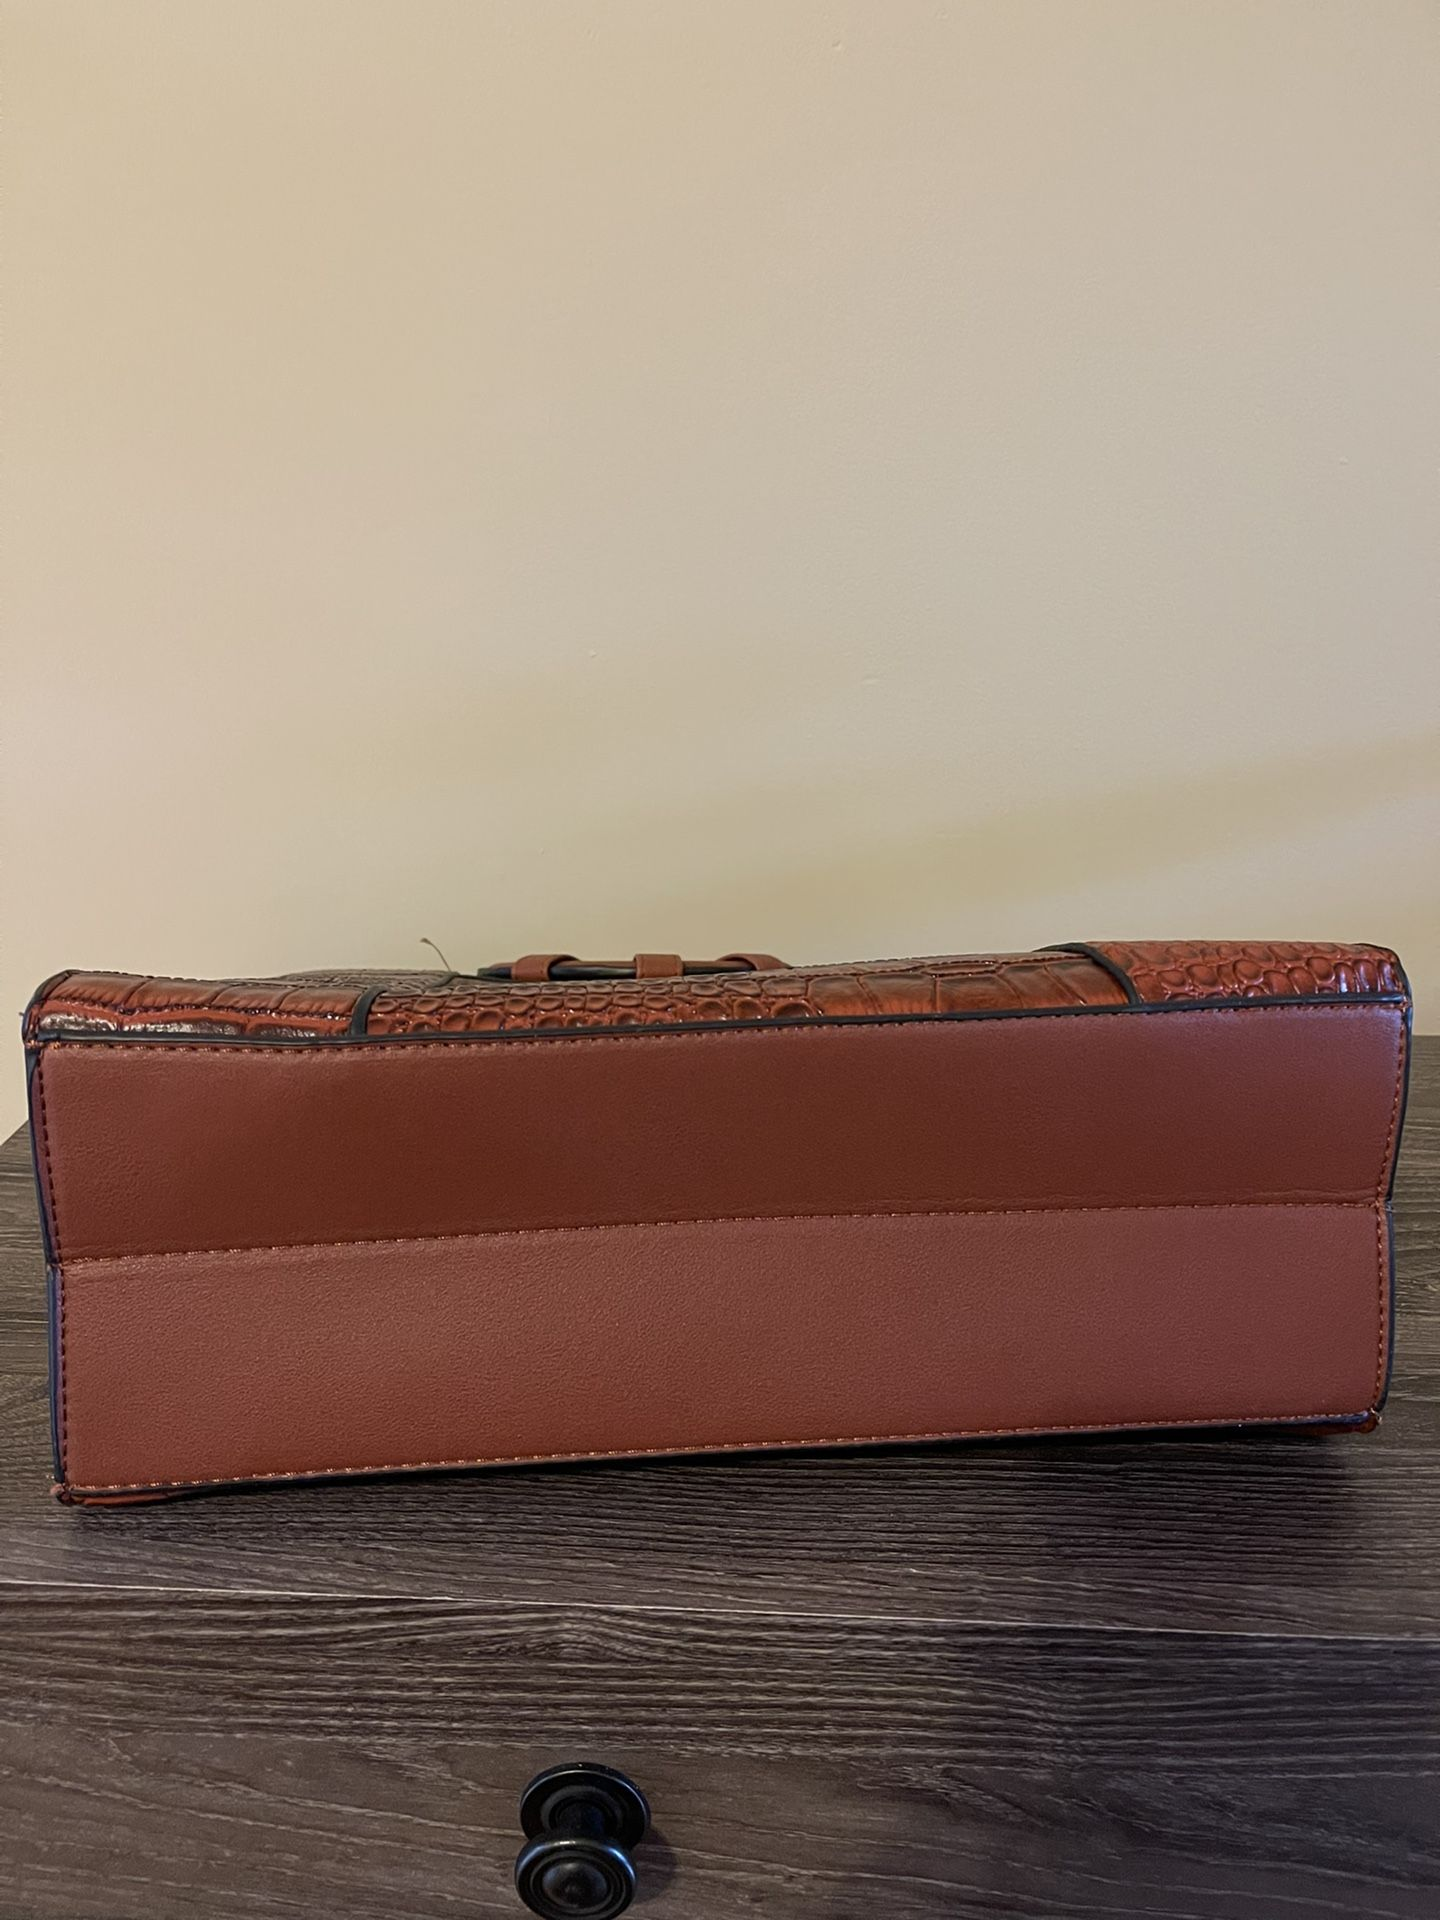 Leather Purse With Shoulder Strap Attachment